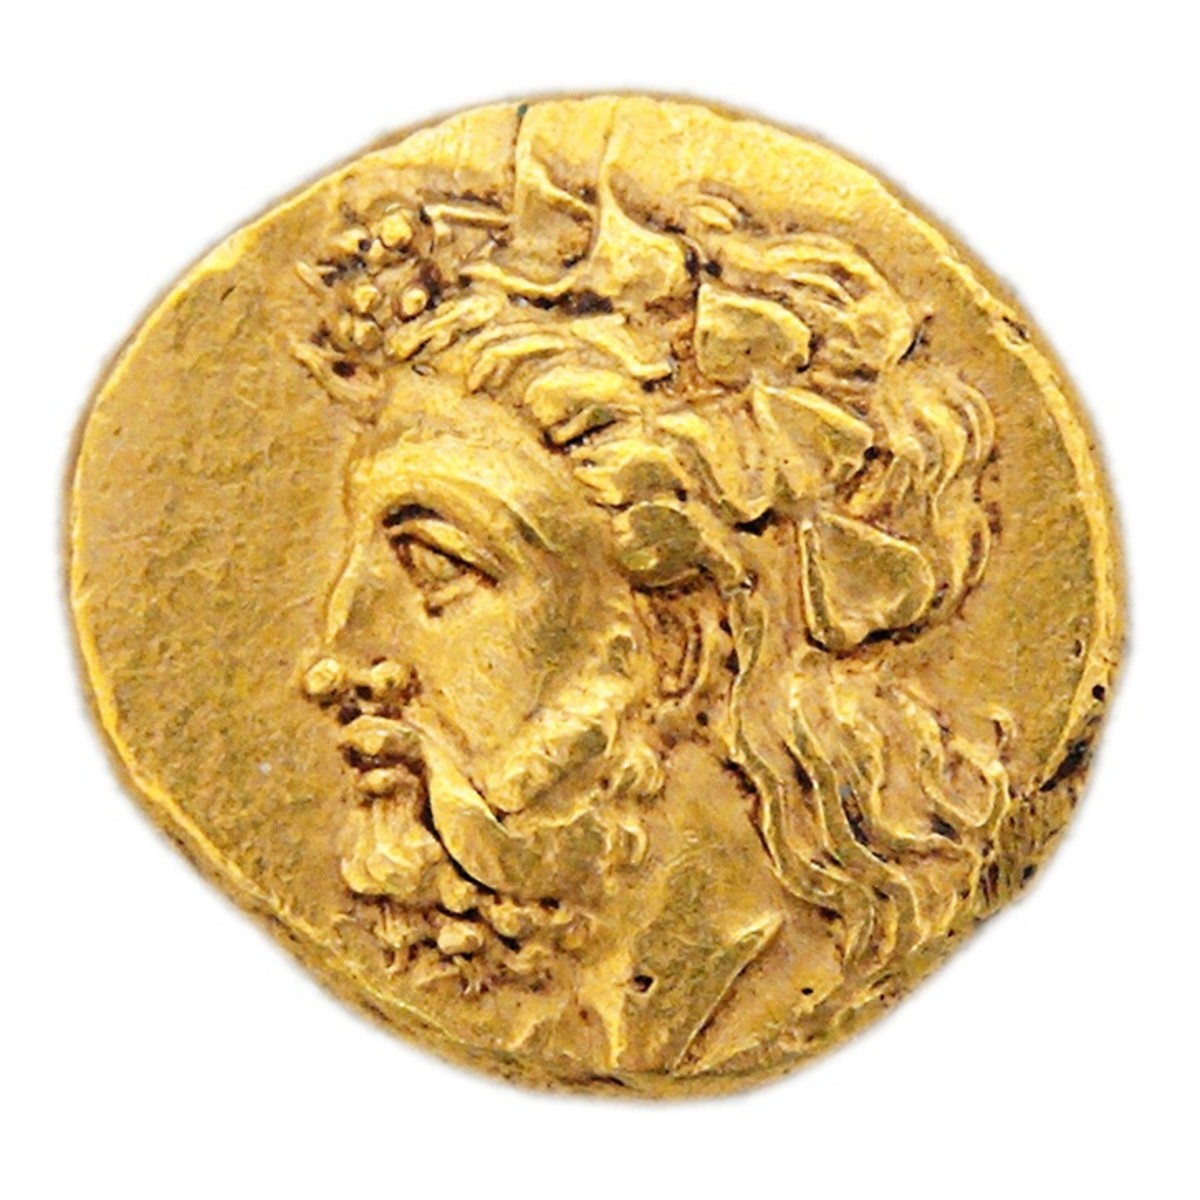 This gold stater from circa 360-340 BC depicts either Dionysus or Priapus (also known as Priapos). He's wearing a crown or wreath of ivy leaves from the reproductive stage of the plant.